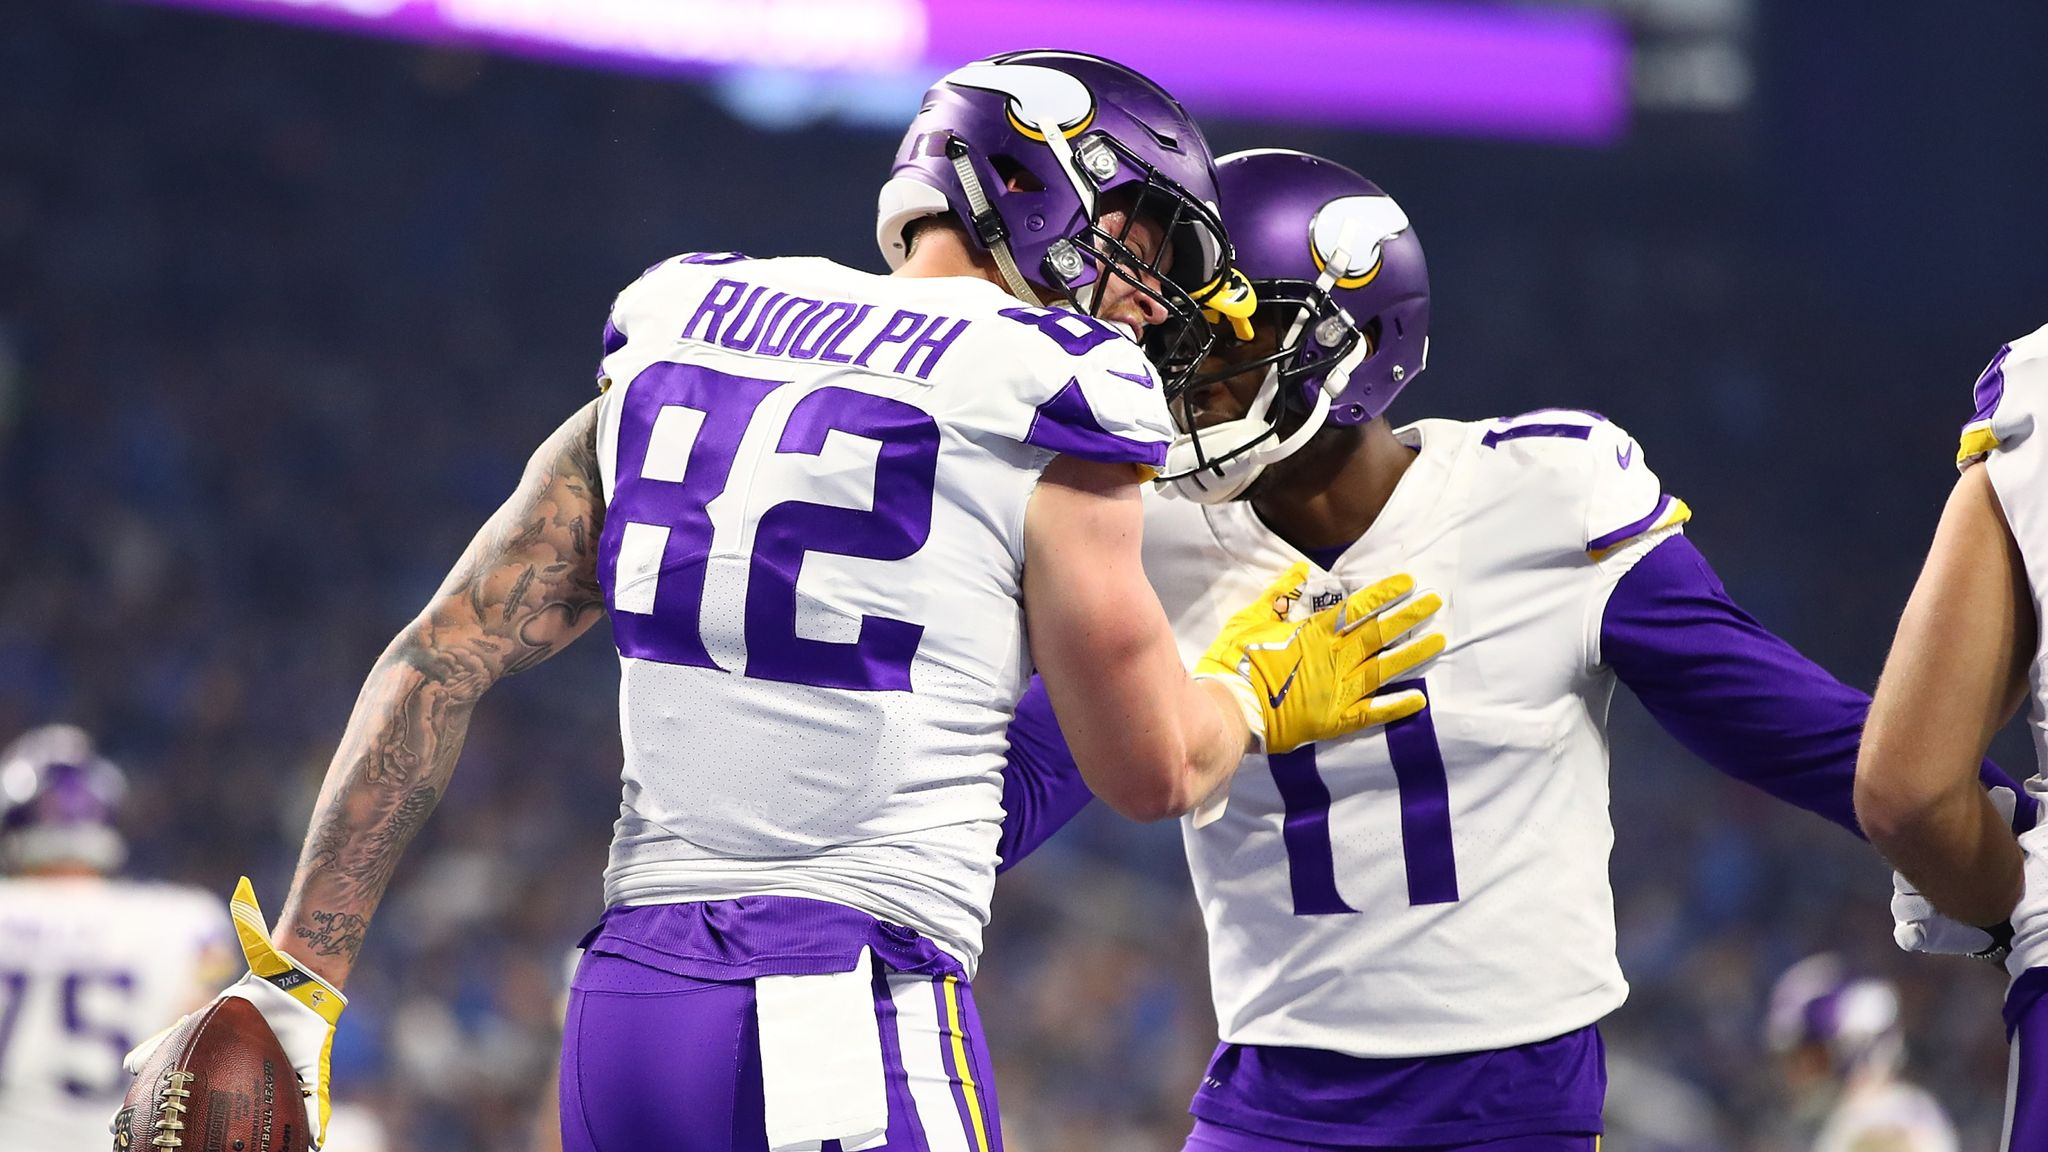 on sale 917a0 47fa7 Kyle Rudolph signs Minnesota Vikings contract extension ...